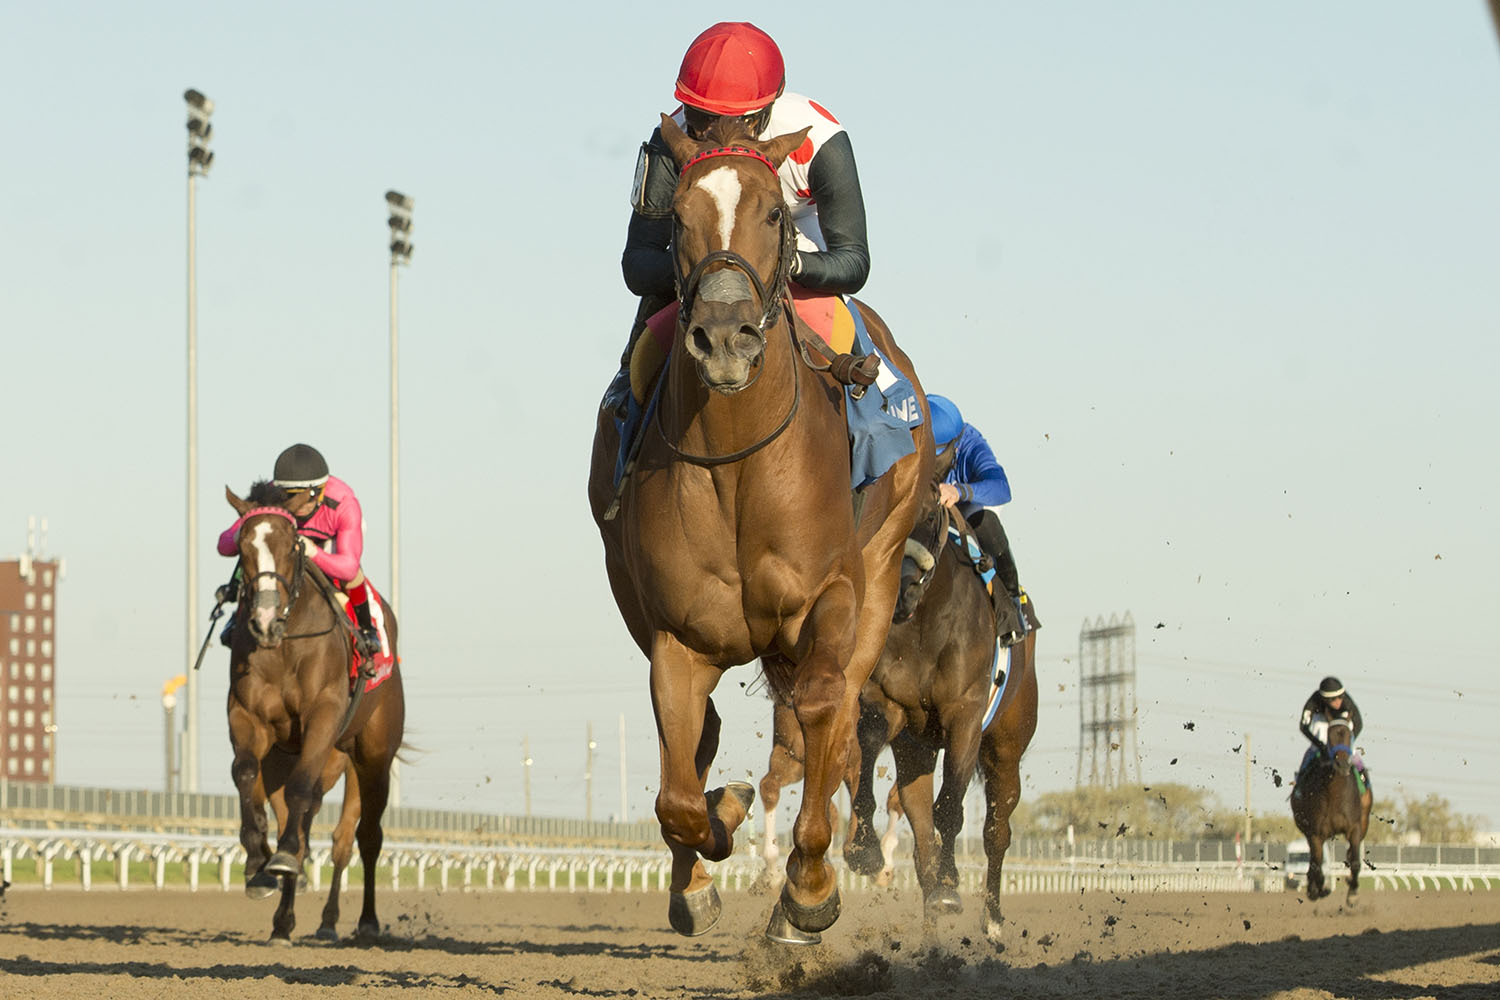 Souper Sensational and jockey Patrick Husbands winning the $100,000 Glorious Song Stakes on Saturday, Oct. 17 at Woodbine Racetrack. (Michael Burns Photo)